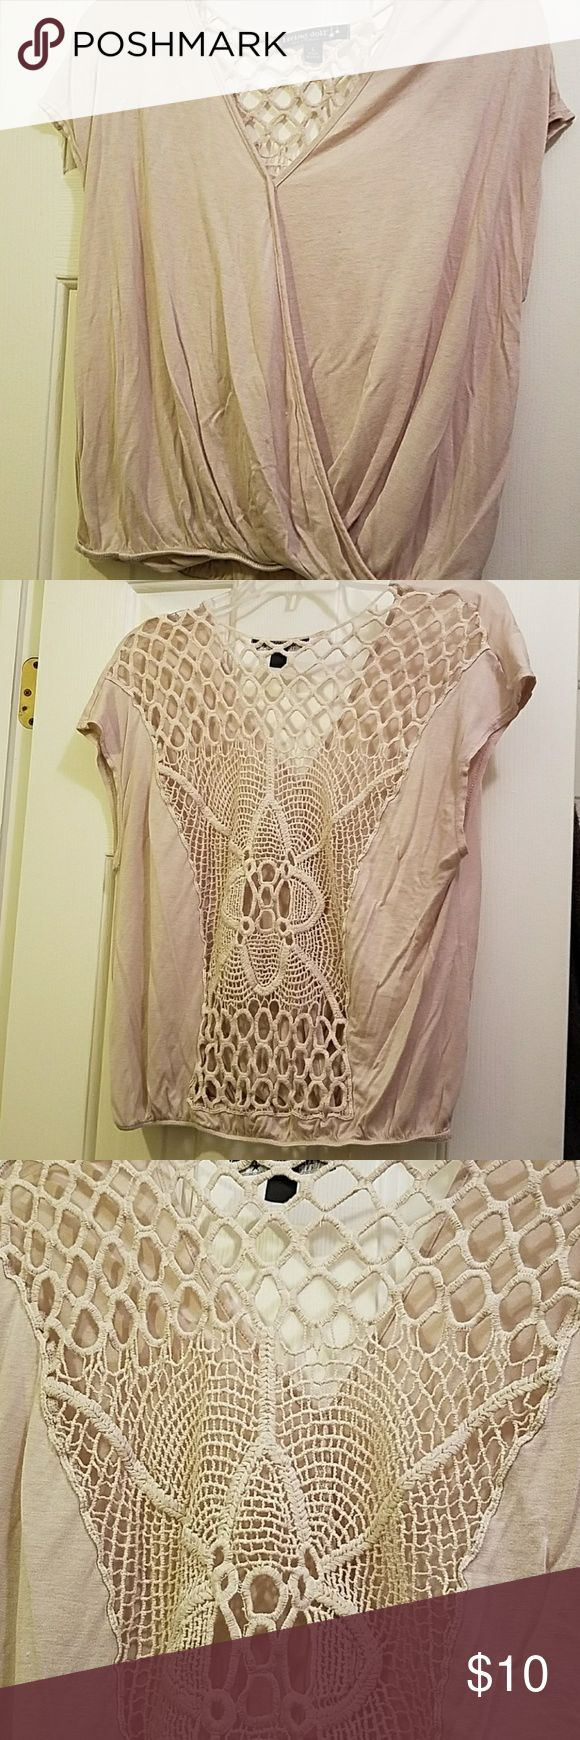 Beige short sleeve top Very cute beige top with design see through back. Sits right at waist and has open front. living doll Tops Blouses